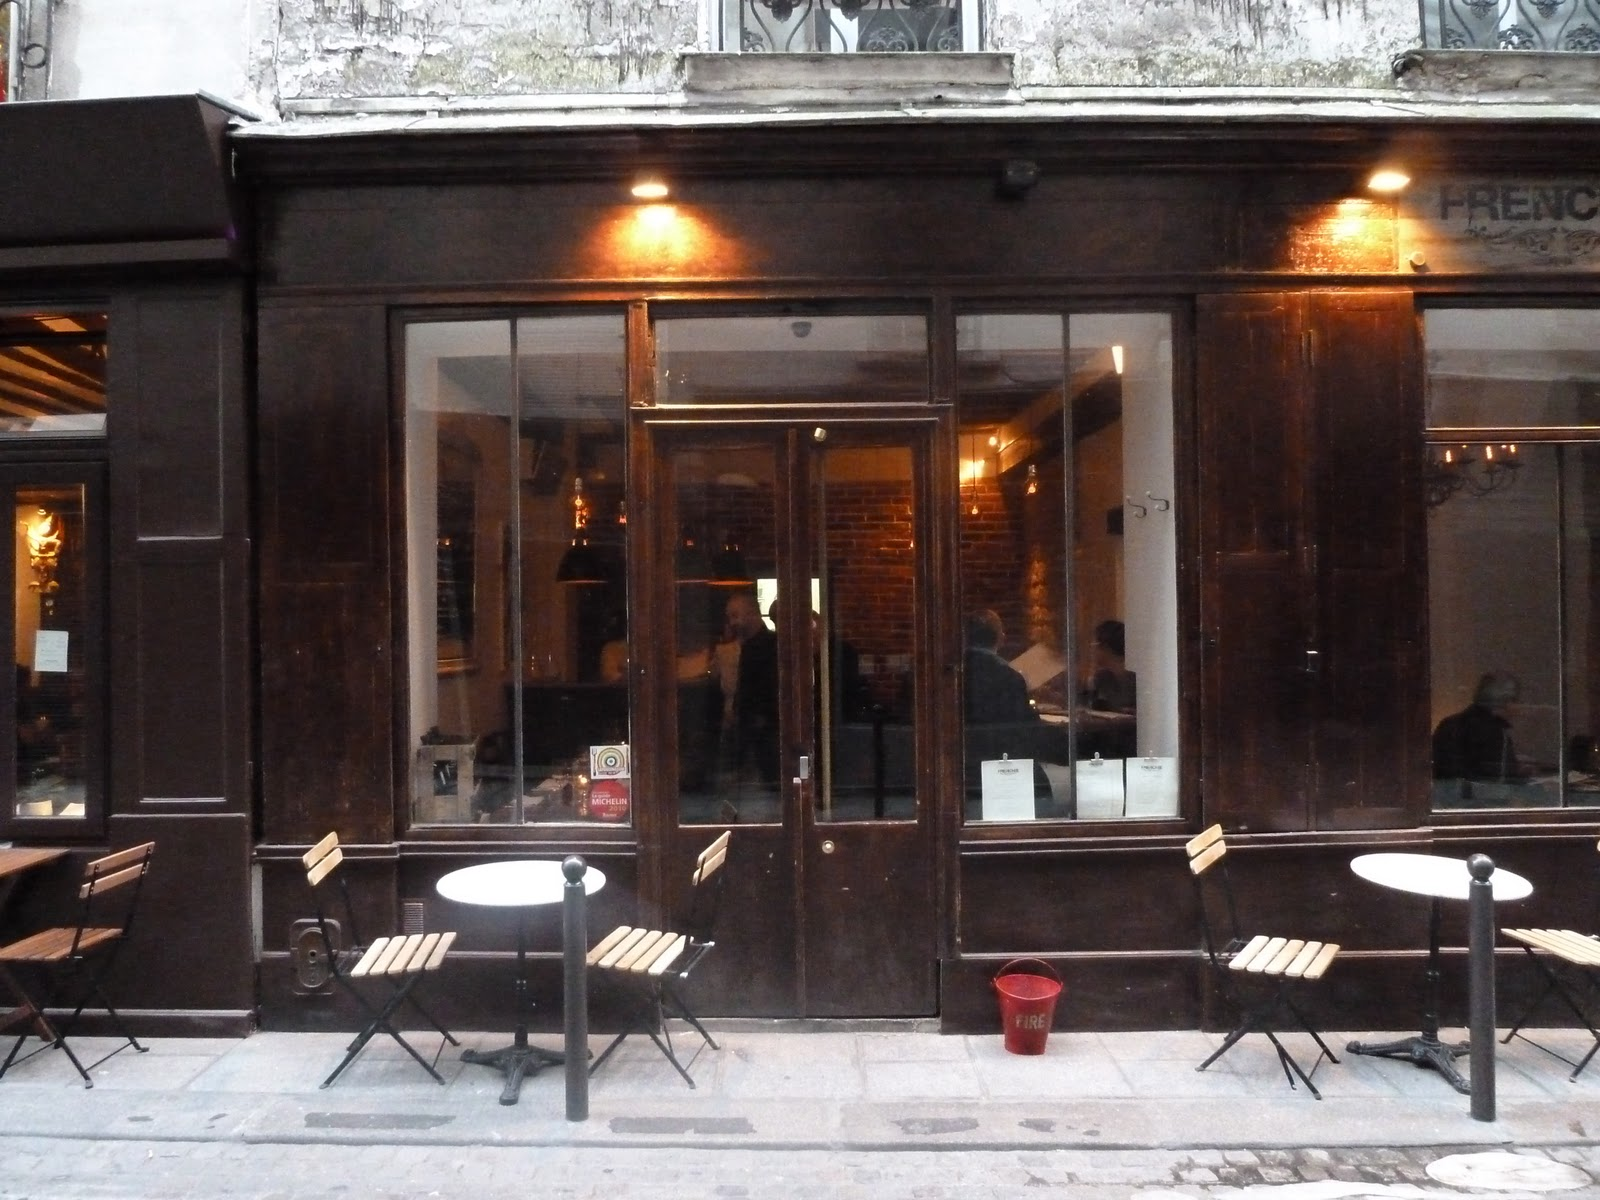 Paris missives frenchie restaurant review for Paris restaurant